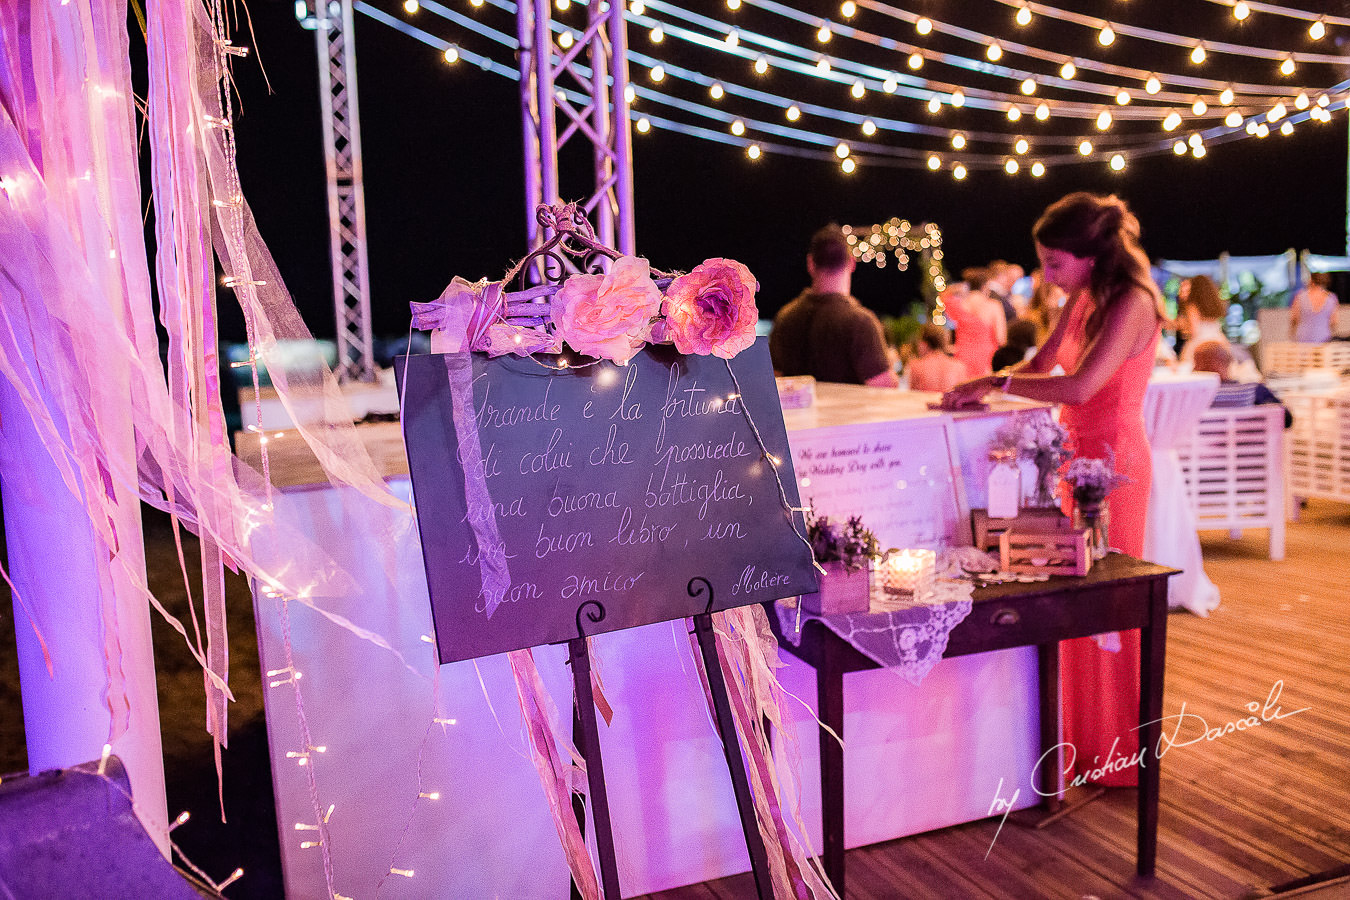 Wedding details by night captured during a wedding photography at the Lighthouse Limassol, by Cyprus Photographer Cristian Dascalu.